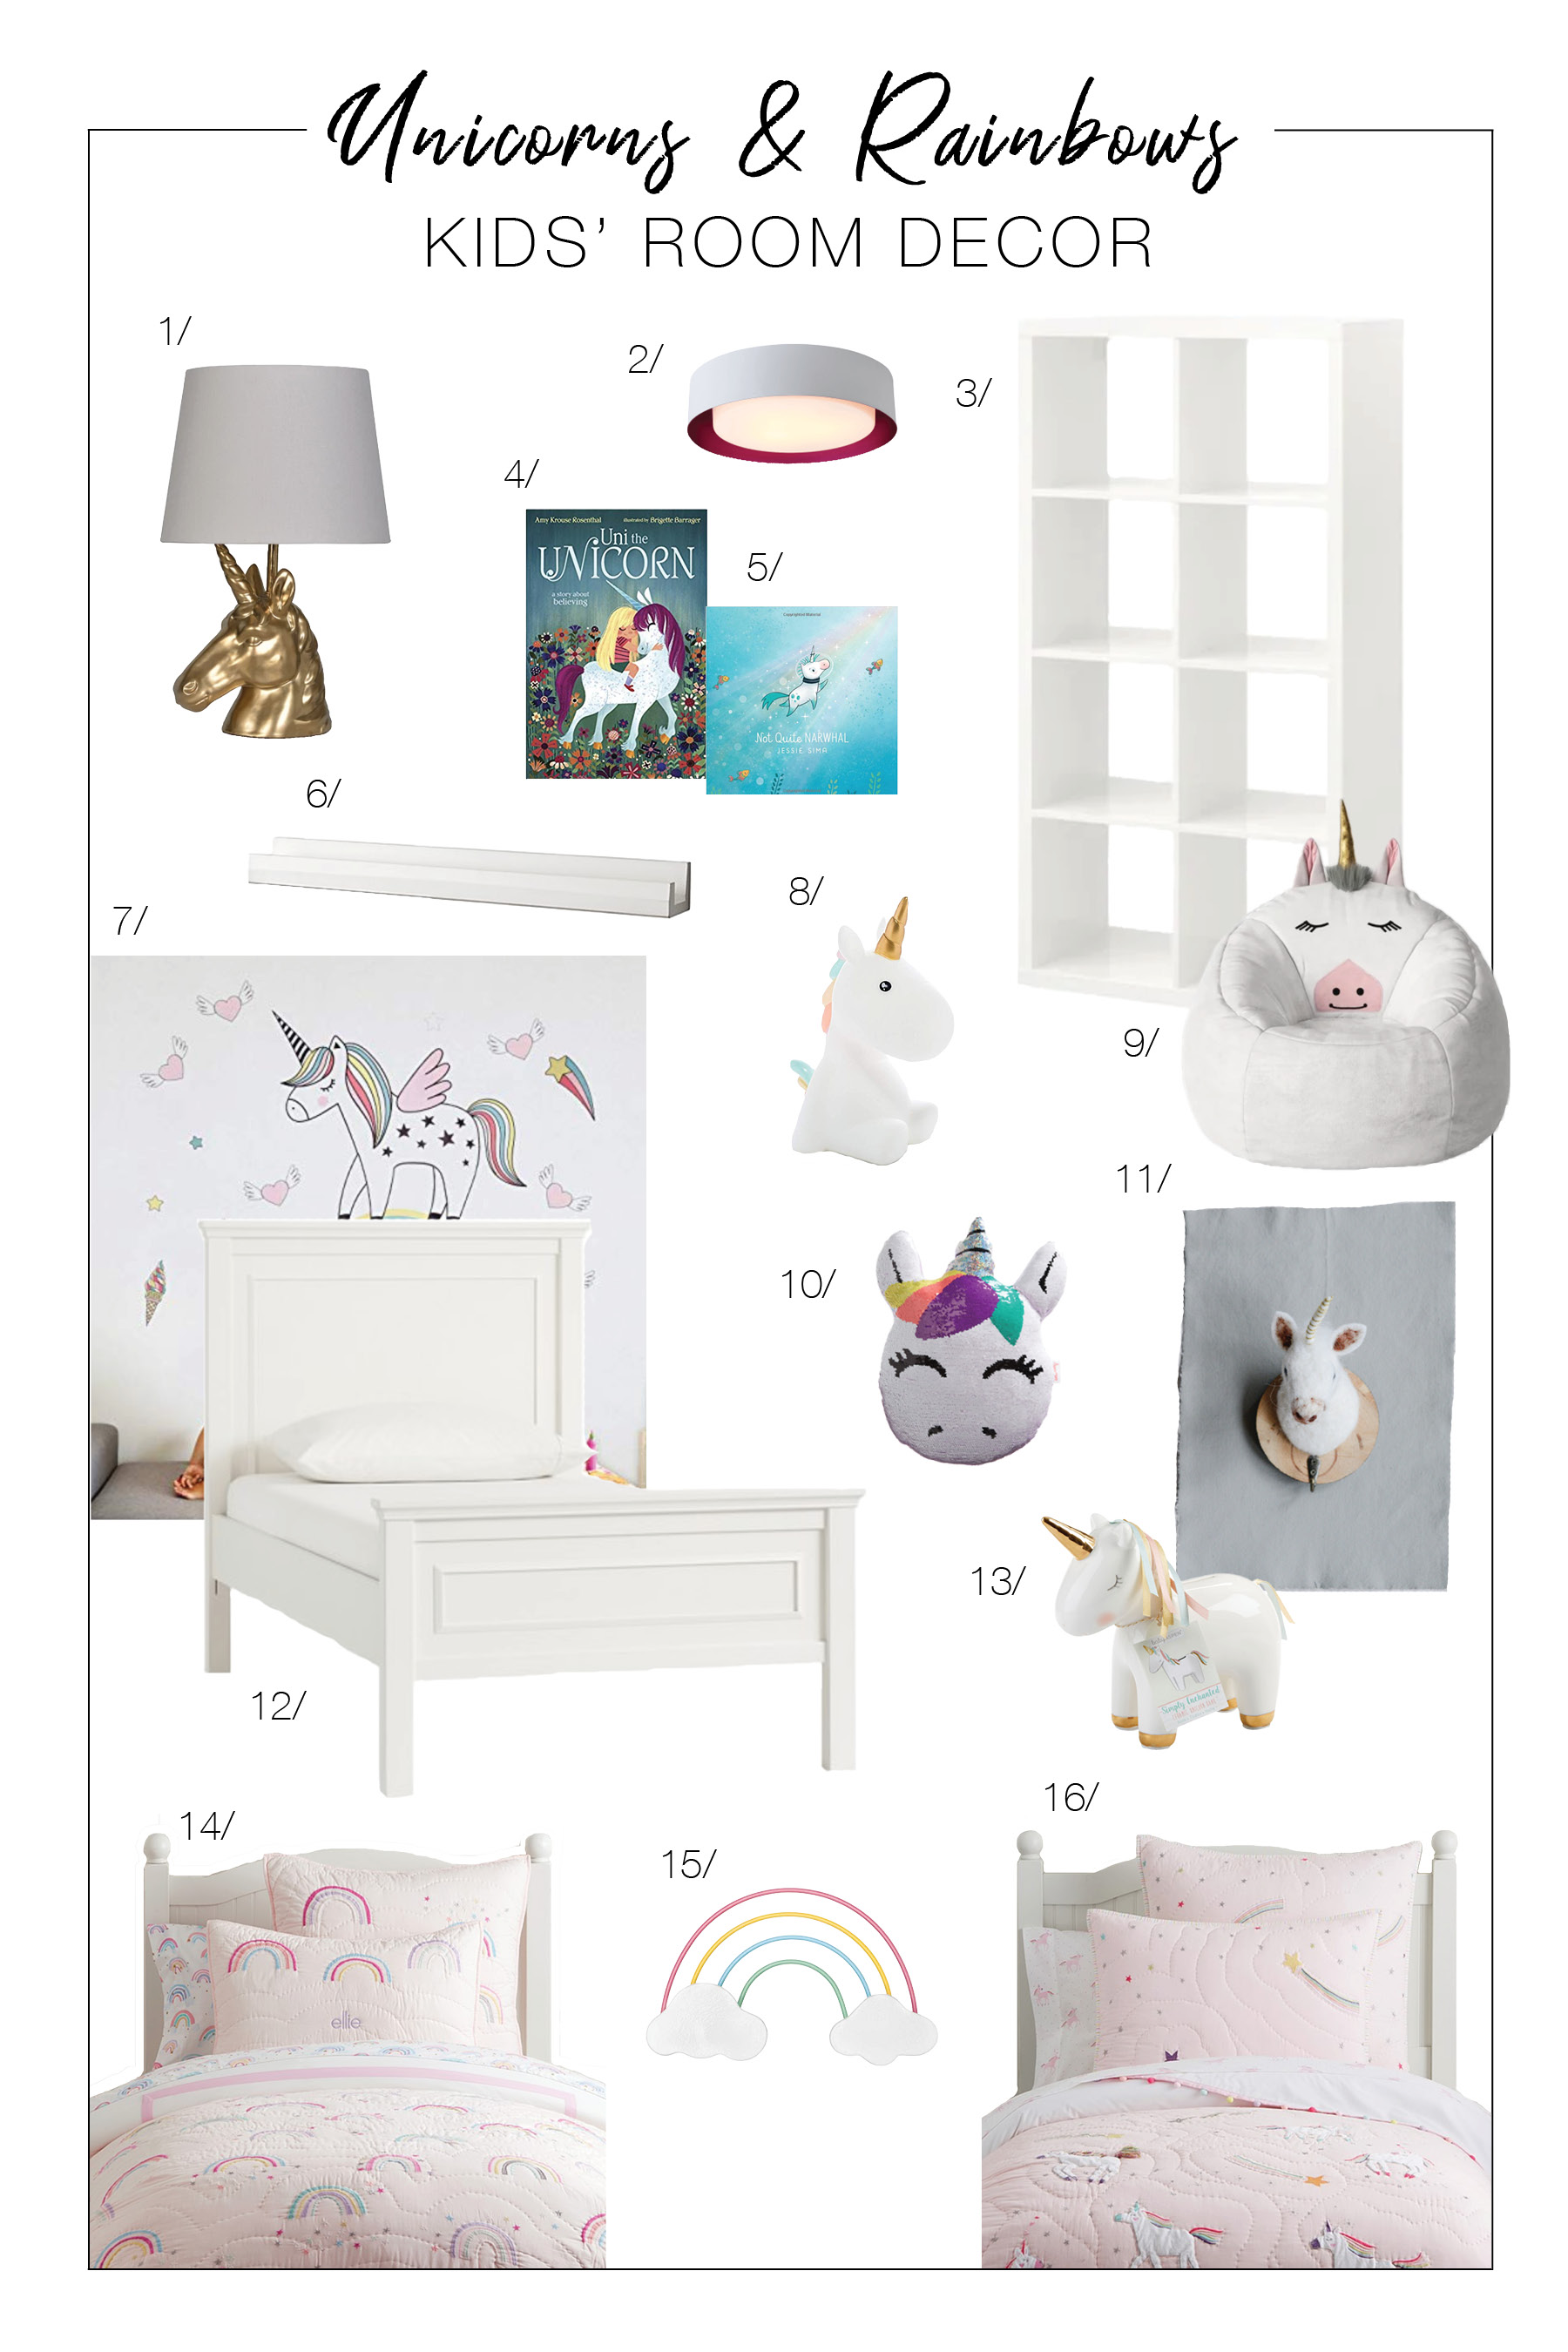 What we love about rainbow & unicorn room decor? It's bright, inspired & will grow with your littles. Our DIY kids' bedroom ideas — right here.